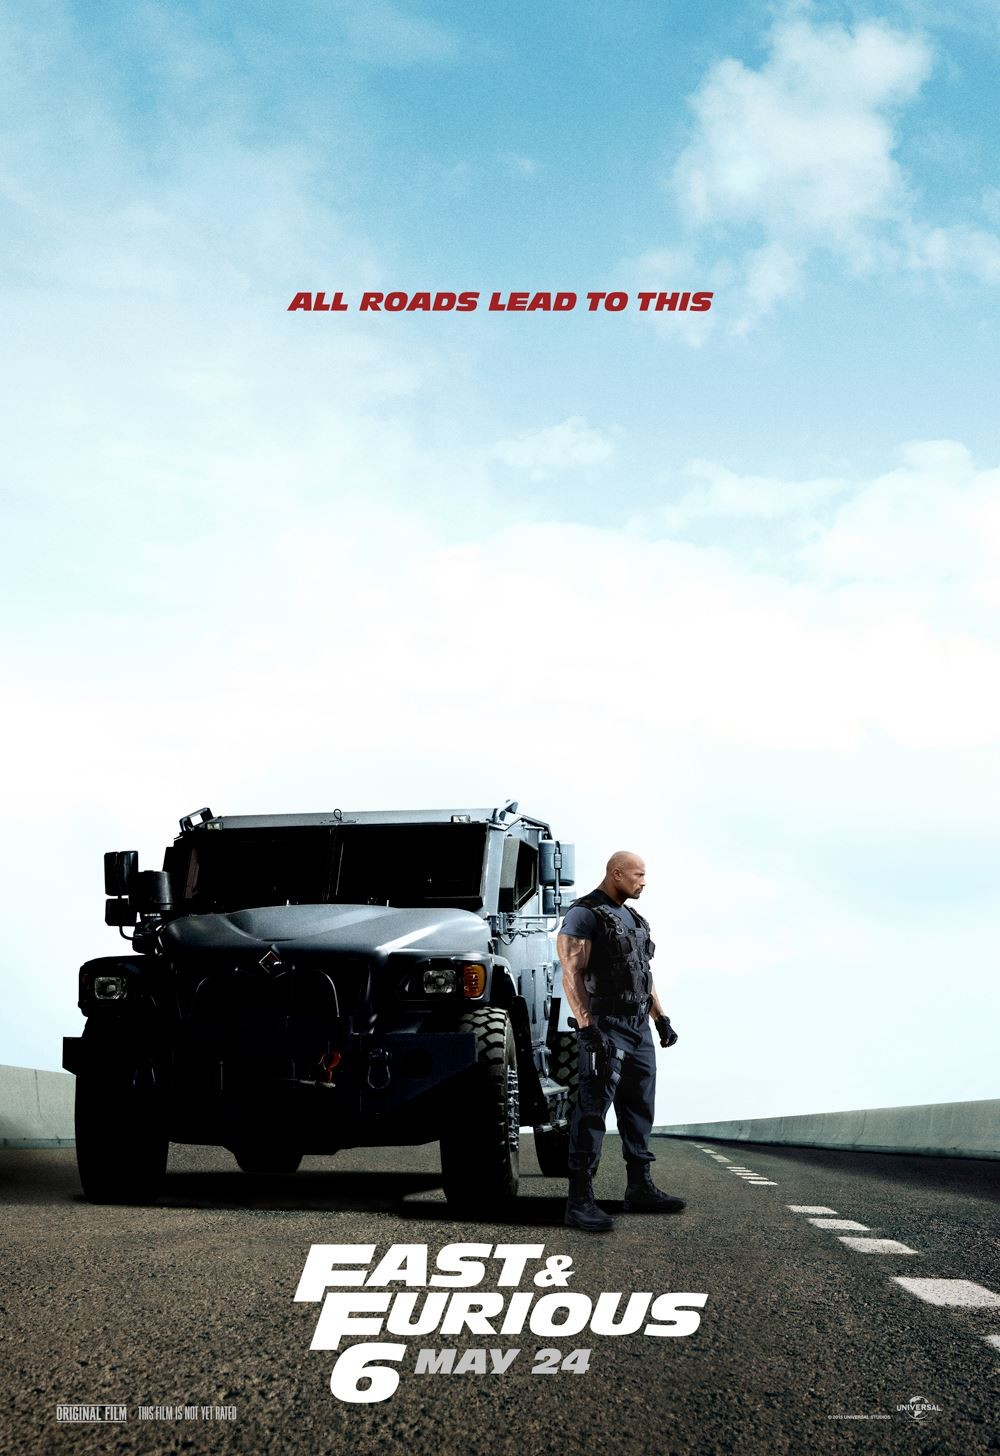 6 Of Pentacles As Advice: Fast And Furious 6 Poster Set Is Complete